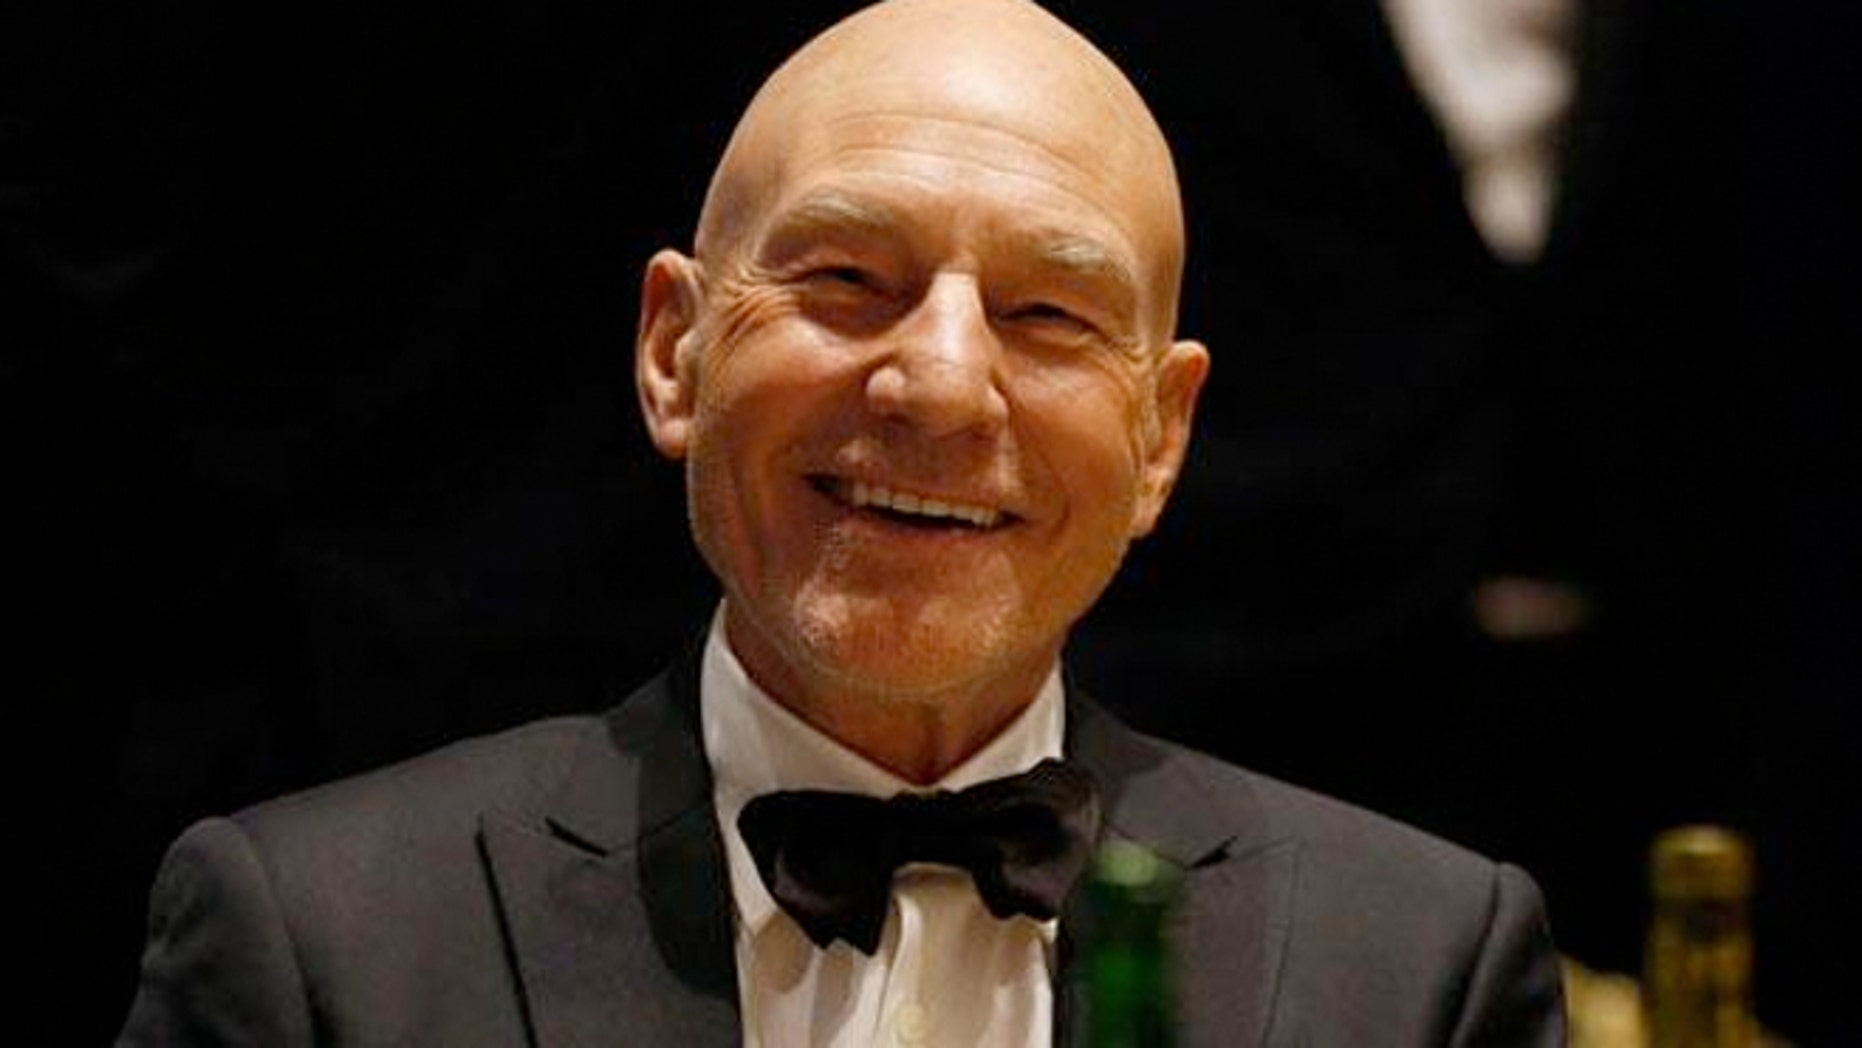 Actor Patrick Stewart at the White House Correspondent's Dinner in April.  Pizza was not served there.